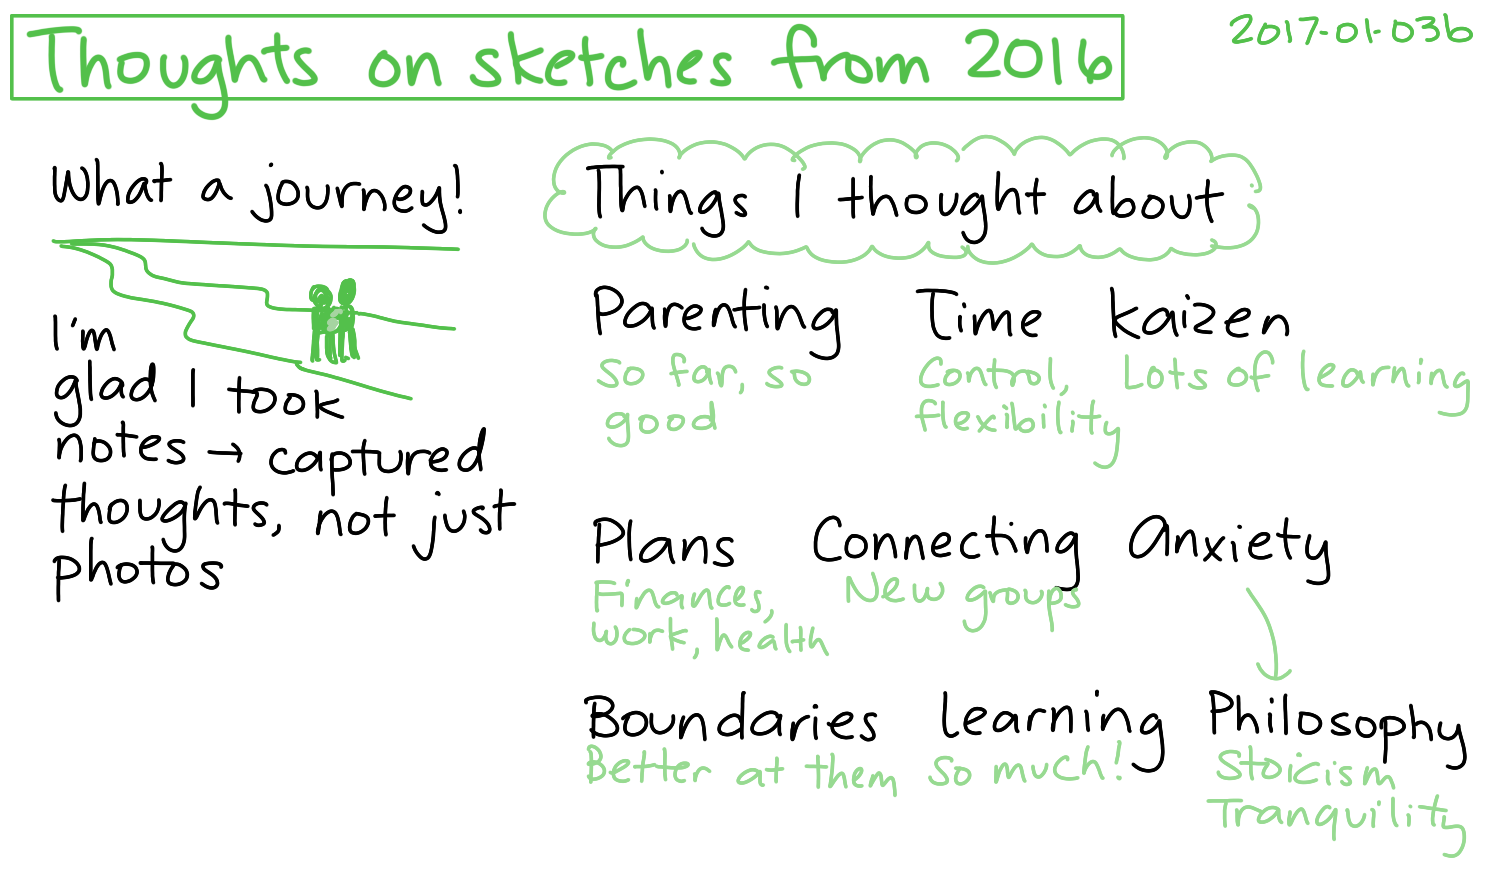 2017-01-03b Thoughts on sketches from 2016 #journaling #review.png